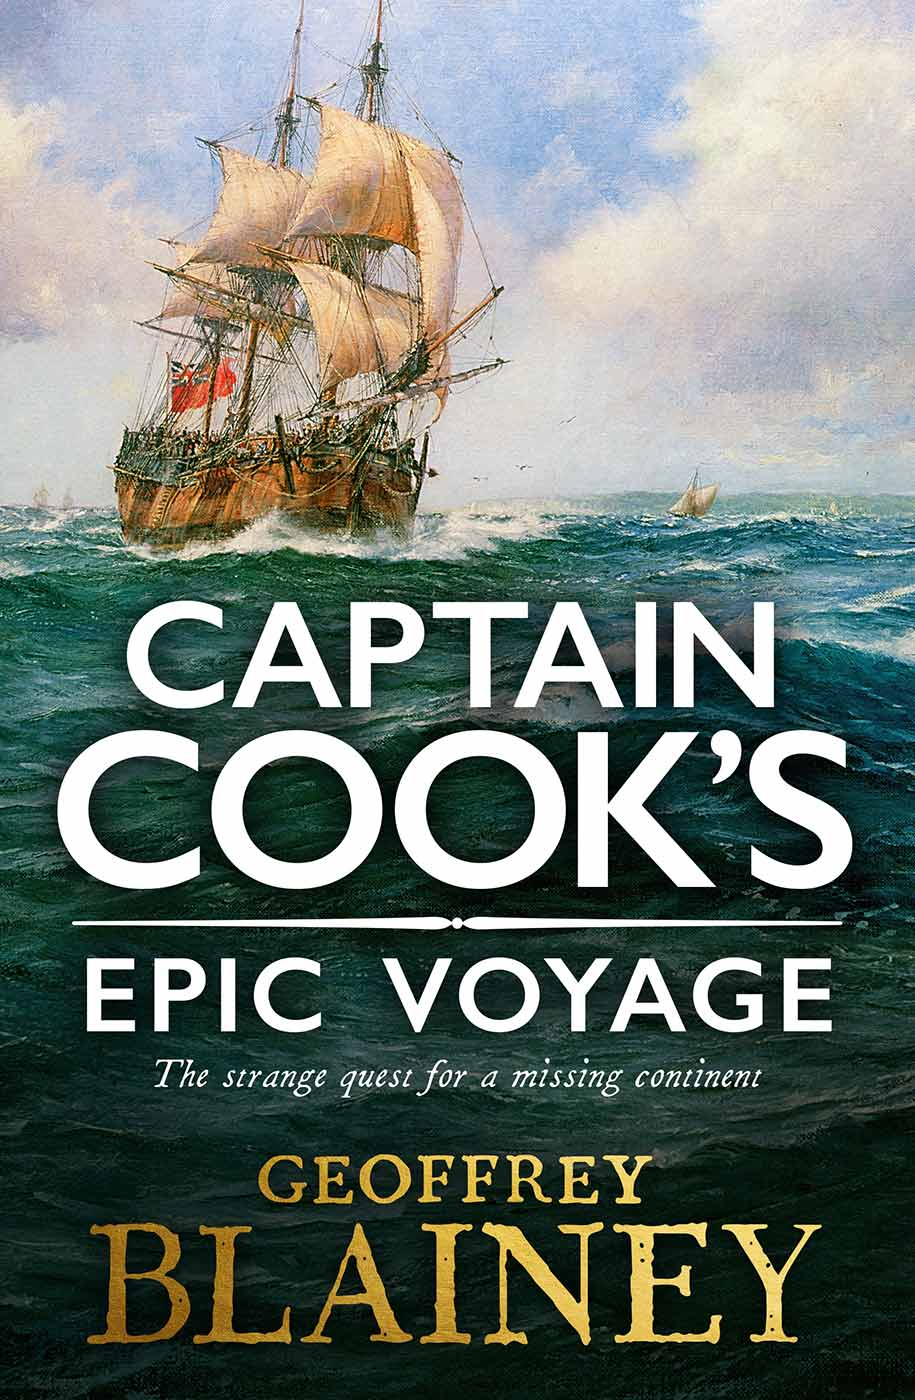 Book cover for 'Captain Cook's Epic Voyage'.